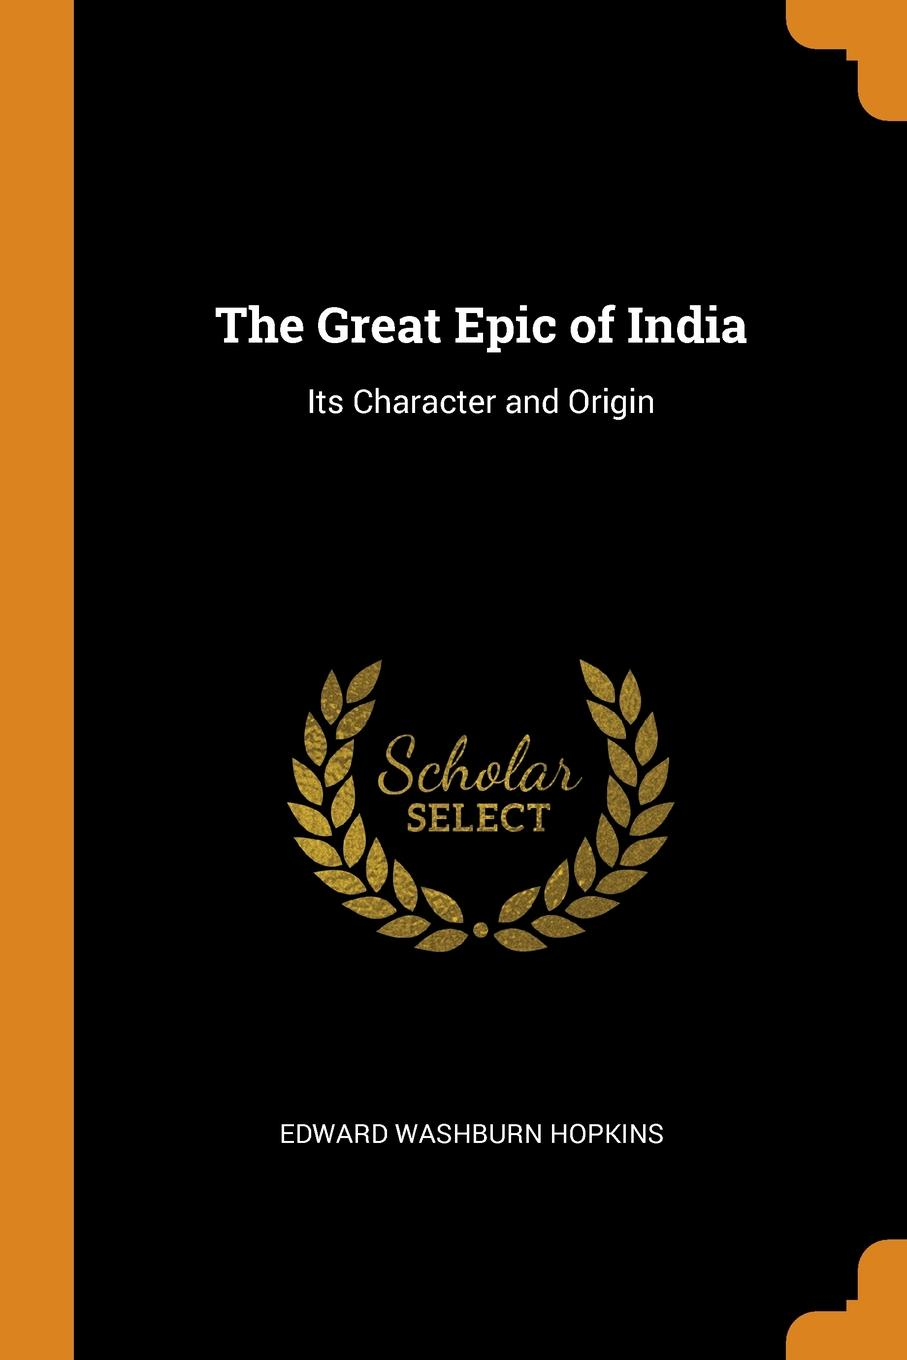 The Great Epic of India. Its Character and Origin